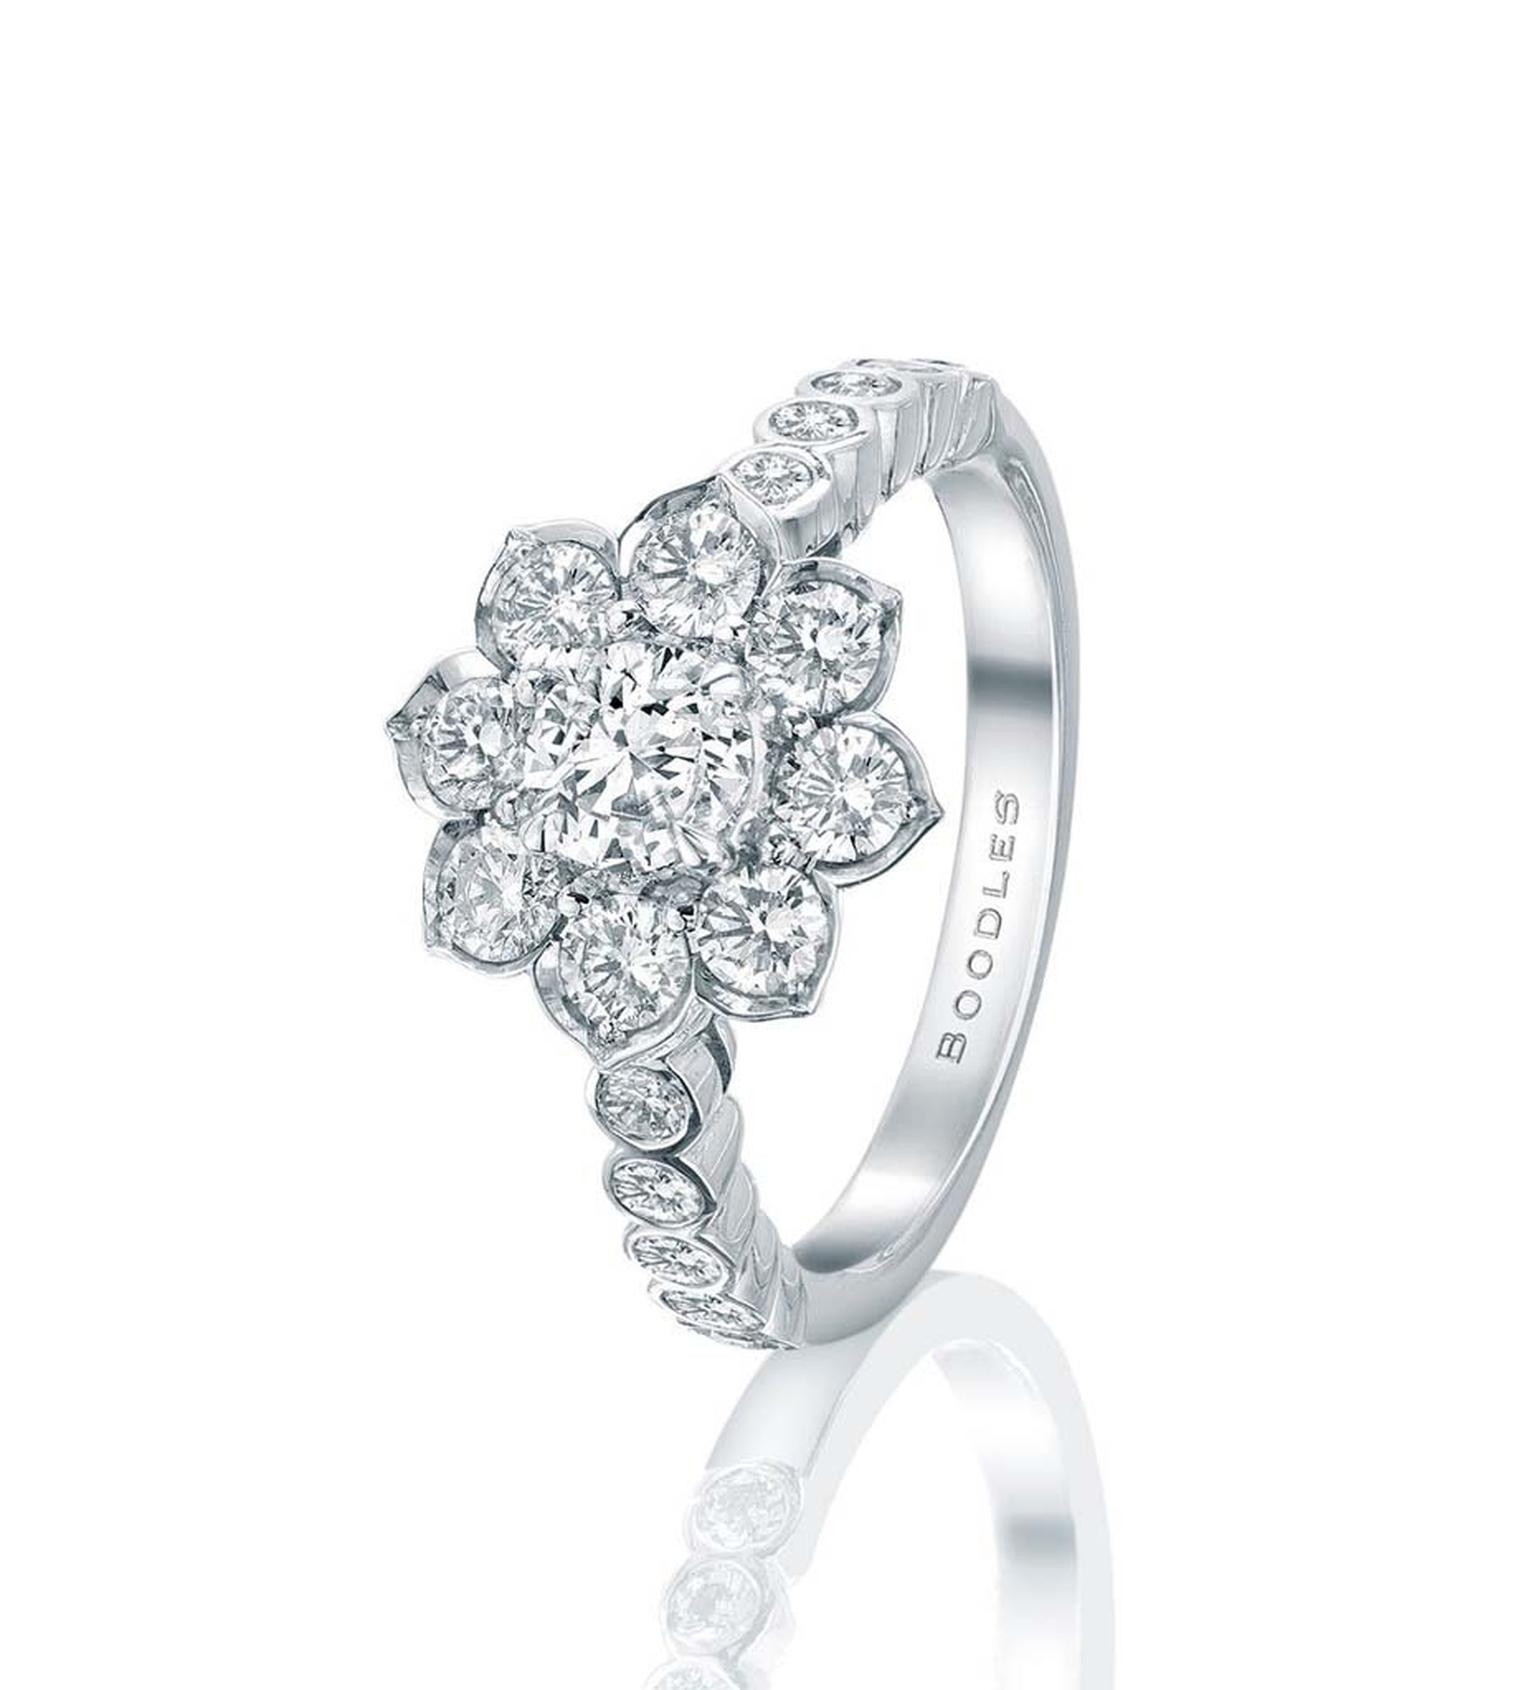 The Passionflower Engagement Ring From Boodles Is Set With A. Pisces Engagement Rings. Design Band Engagement Rings. Cobra Snake Rings. Palladium Metal Wedding Rings